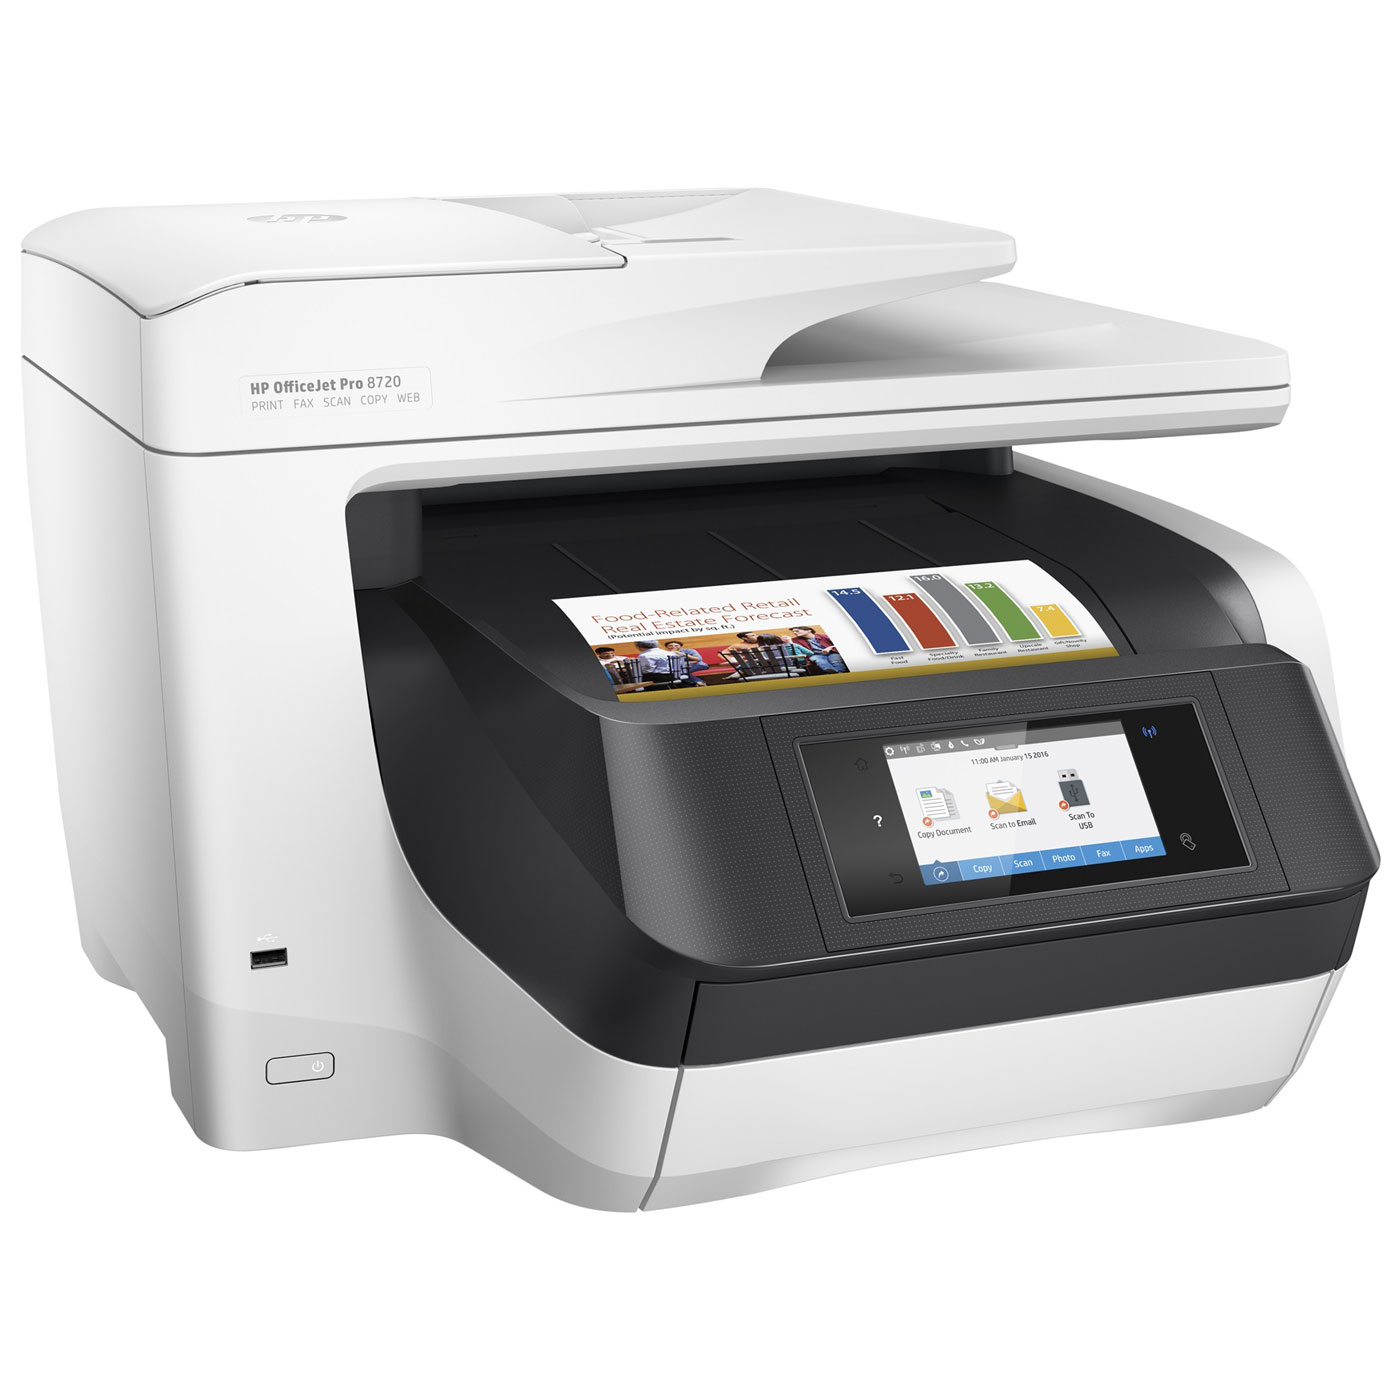 Internet Fax Einrichten Hp Officejet Pro 8720 Imprimante Multifonction Hp Sur